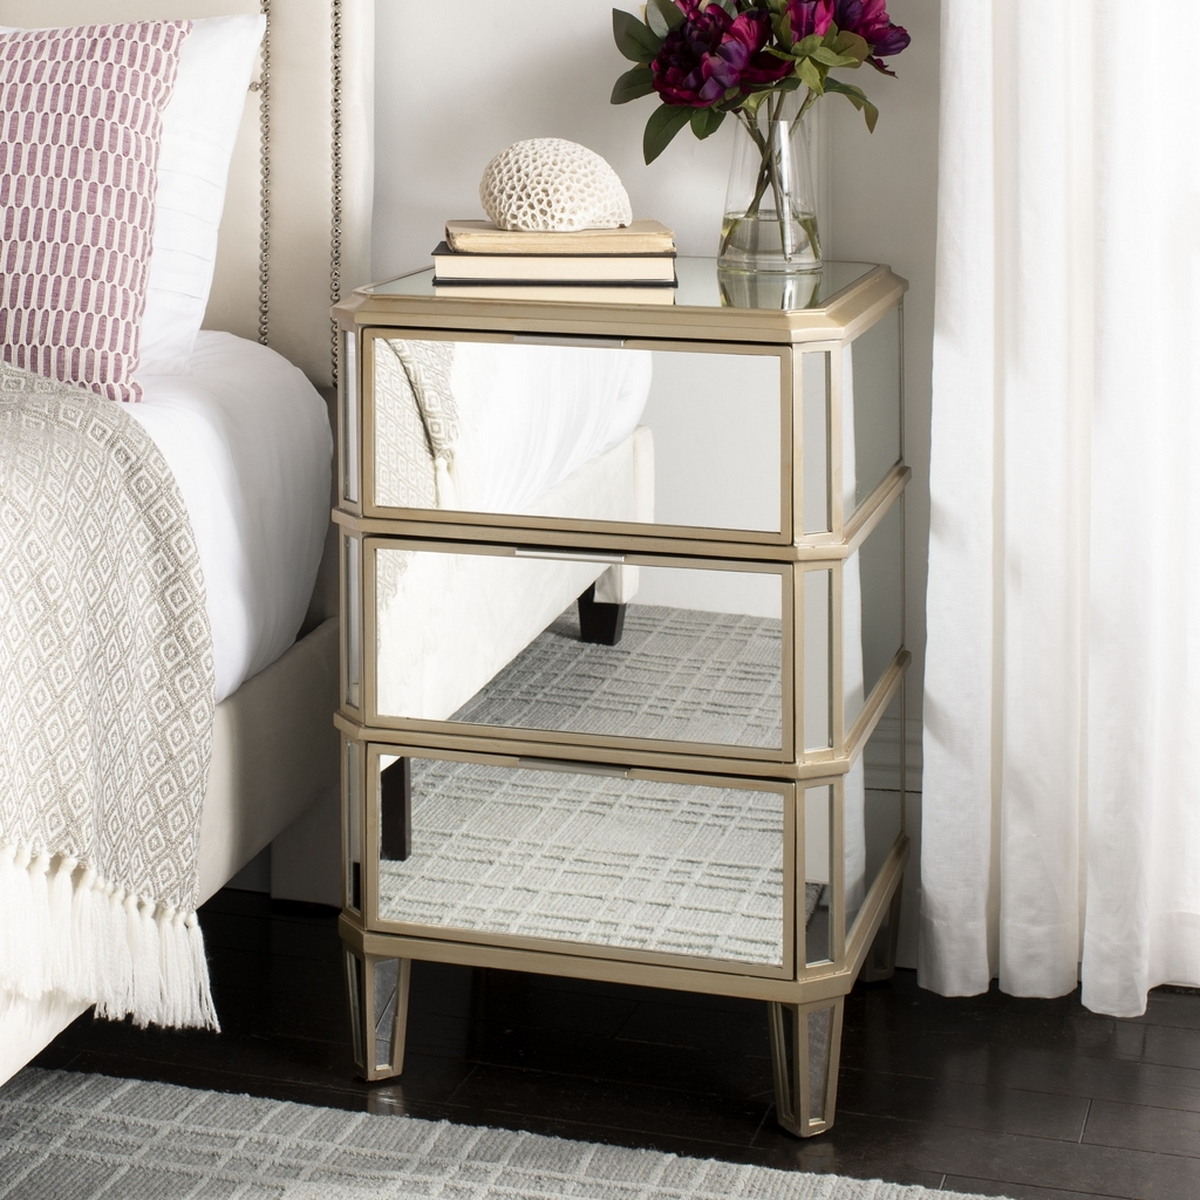 Nst6601a Nightstands Furniture By Safavieh